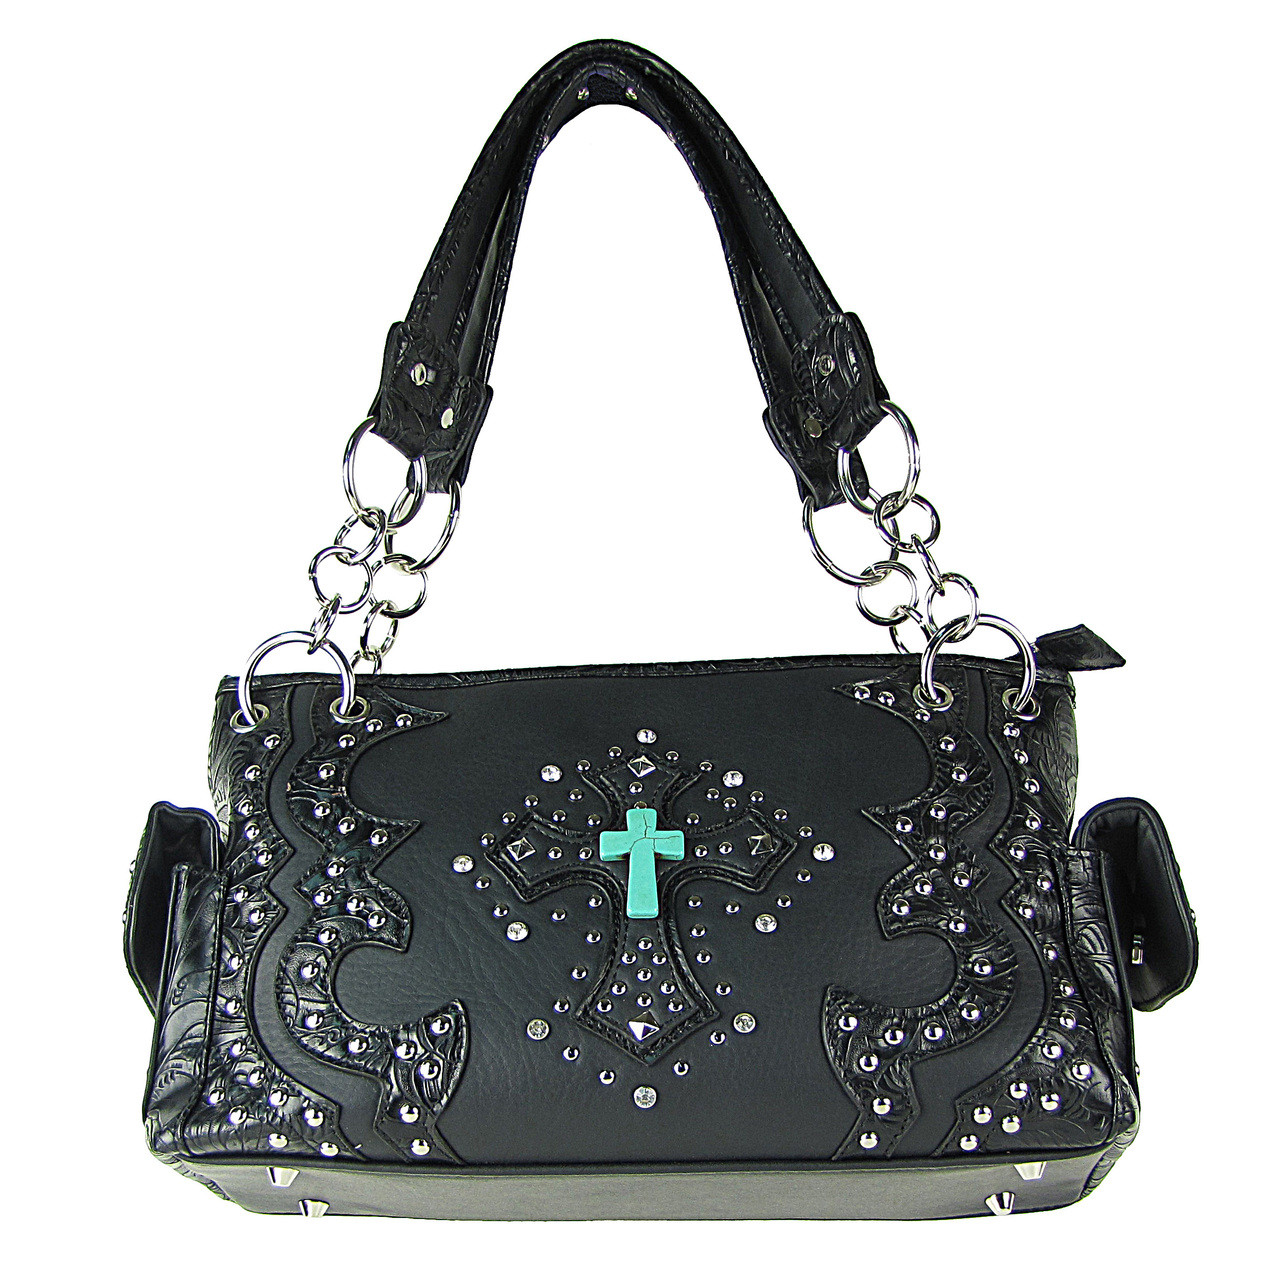 BLACK WESTERN STUDDED RHINESTONE BLUE STONE CROSS LOOK SHOULDER HANDBAG HB1-W6CCRBLK